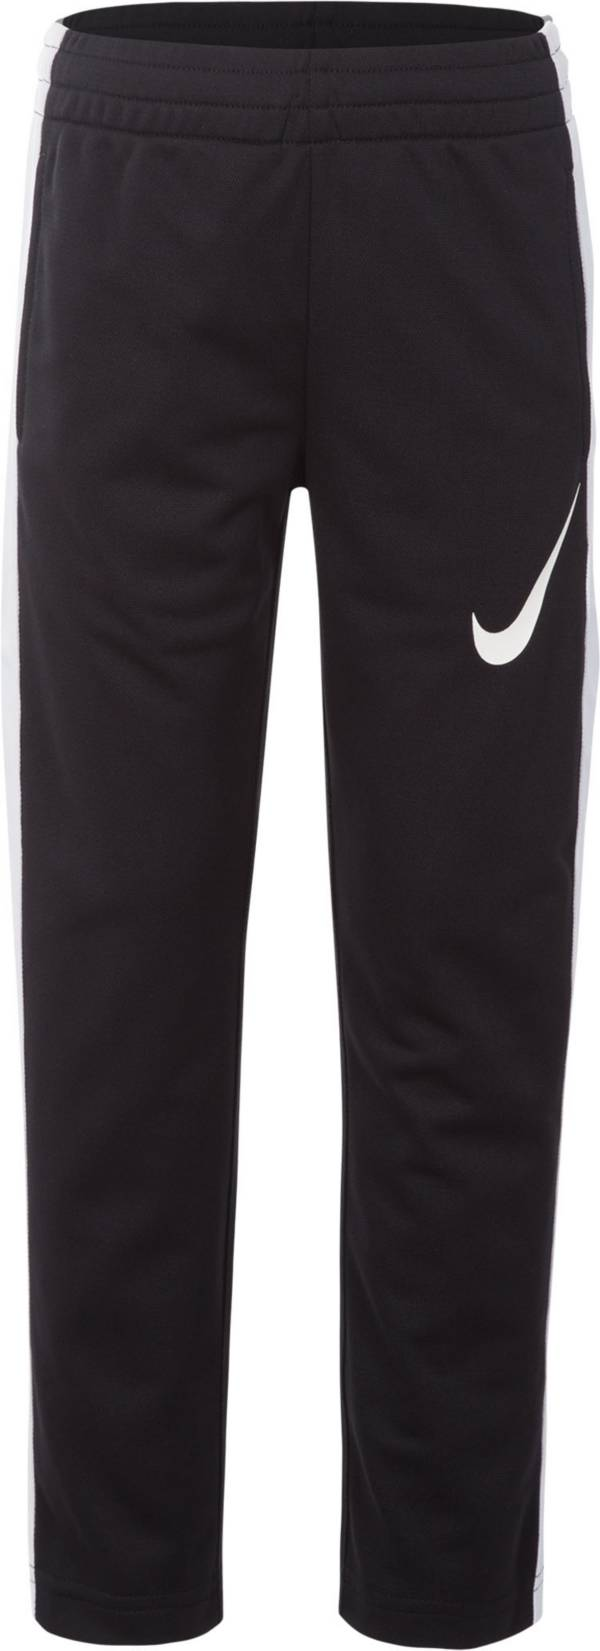 Nike Little Boys' Performance Knit Pants product image